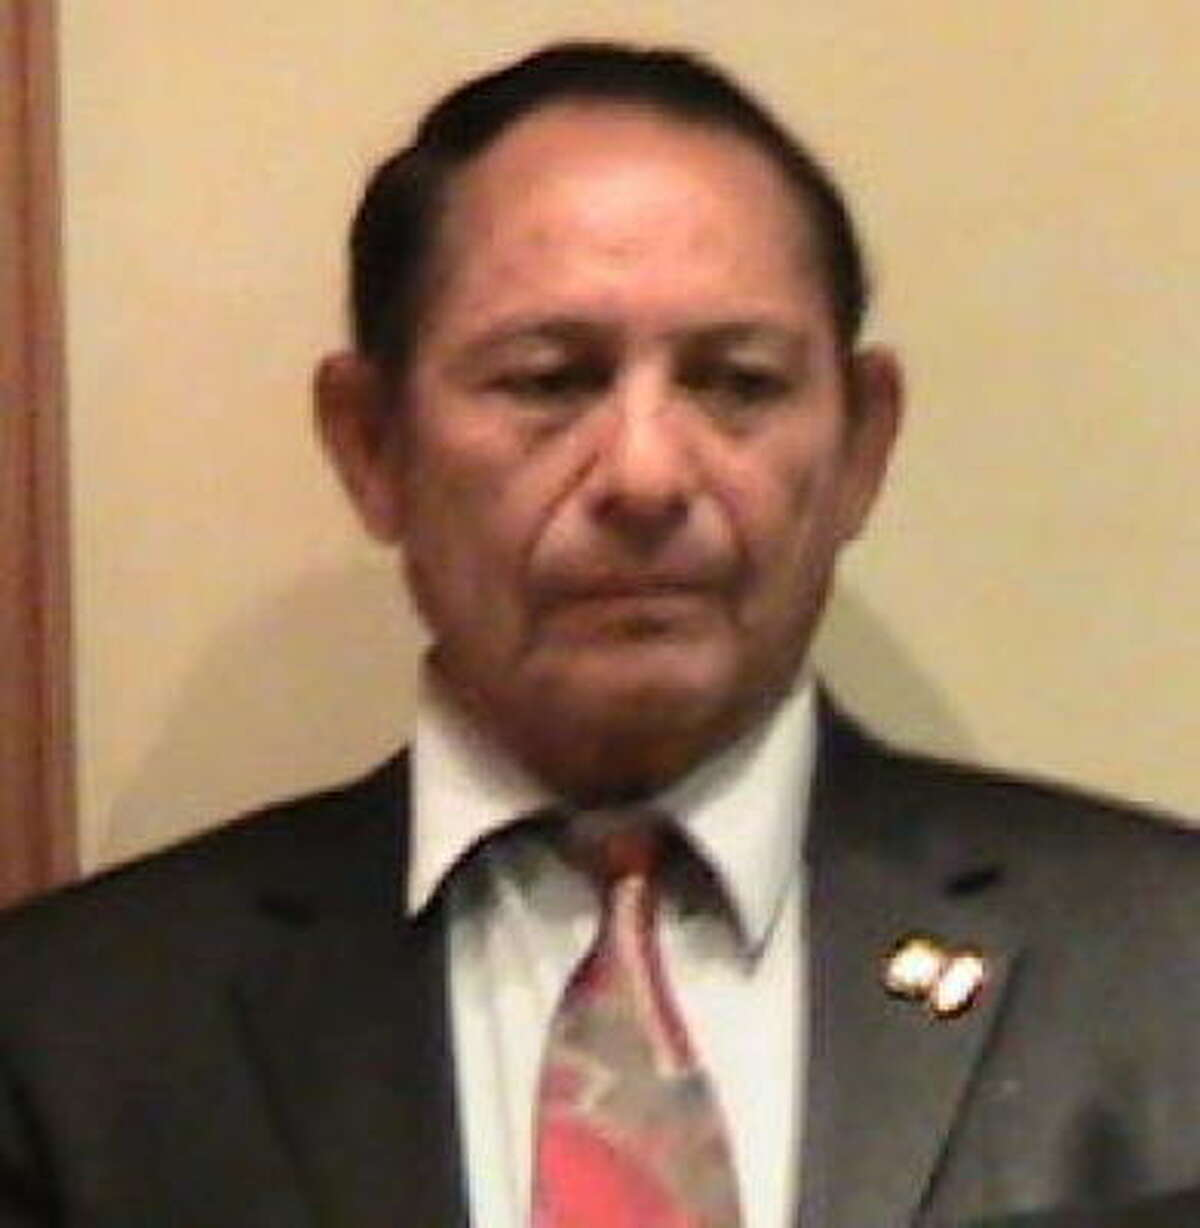 Manuel Farfán had taken office Jan. 1 with the change of city and state governments.